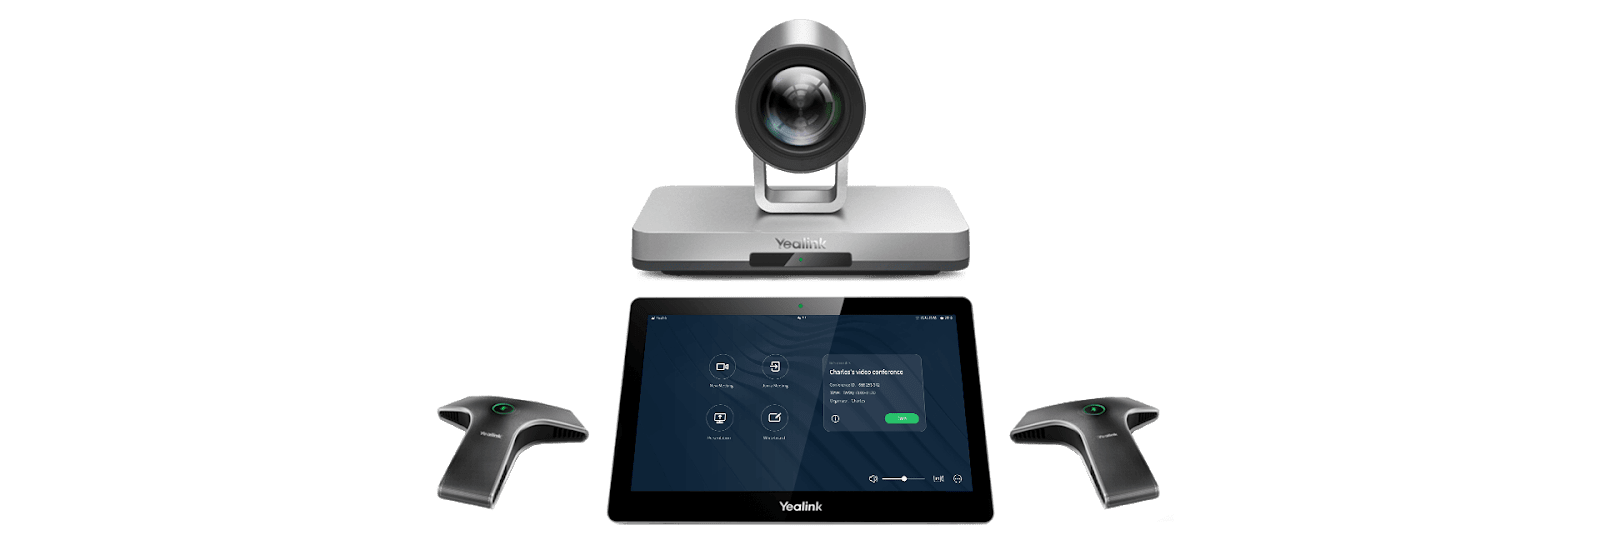 Yealink VC800 video conferencing solution